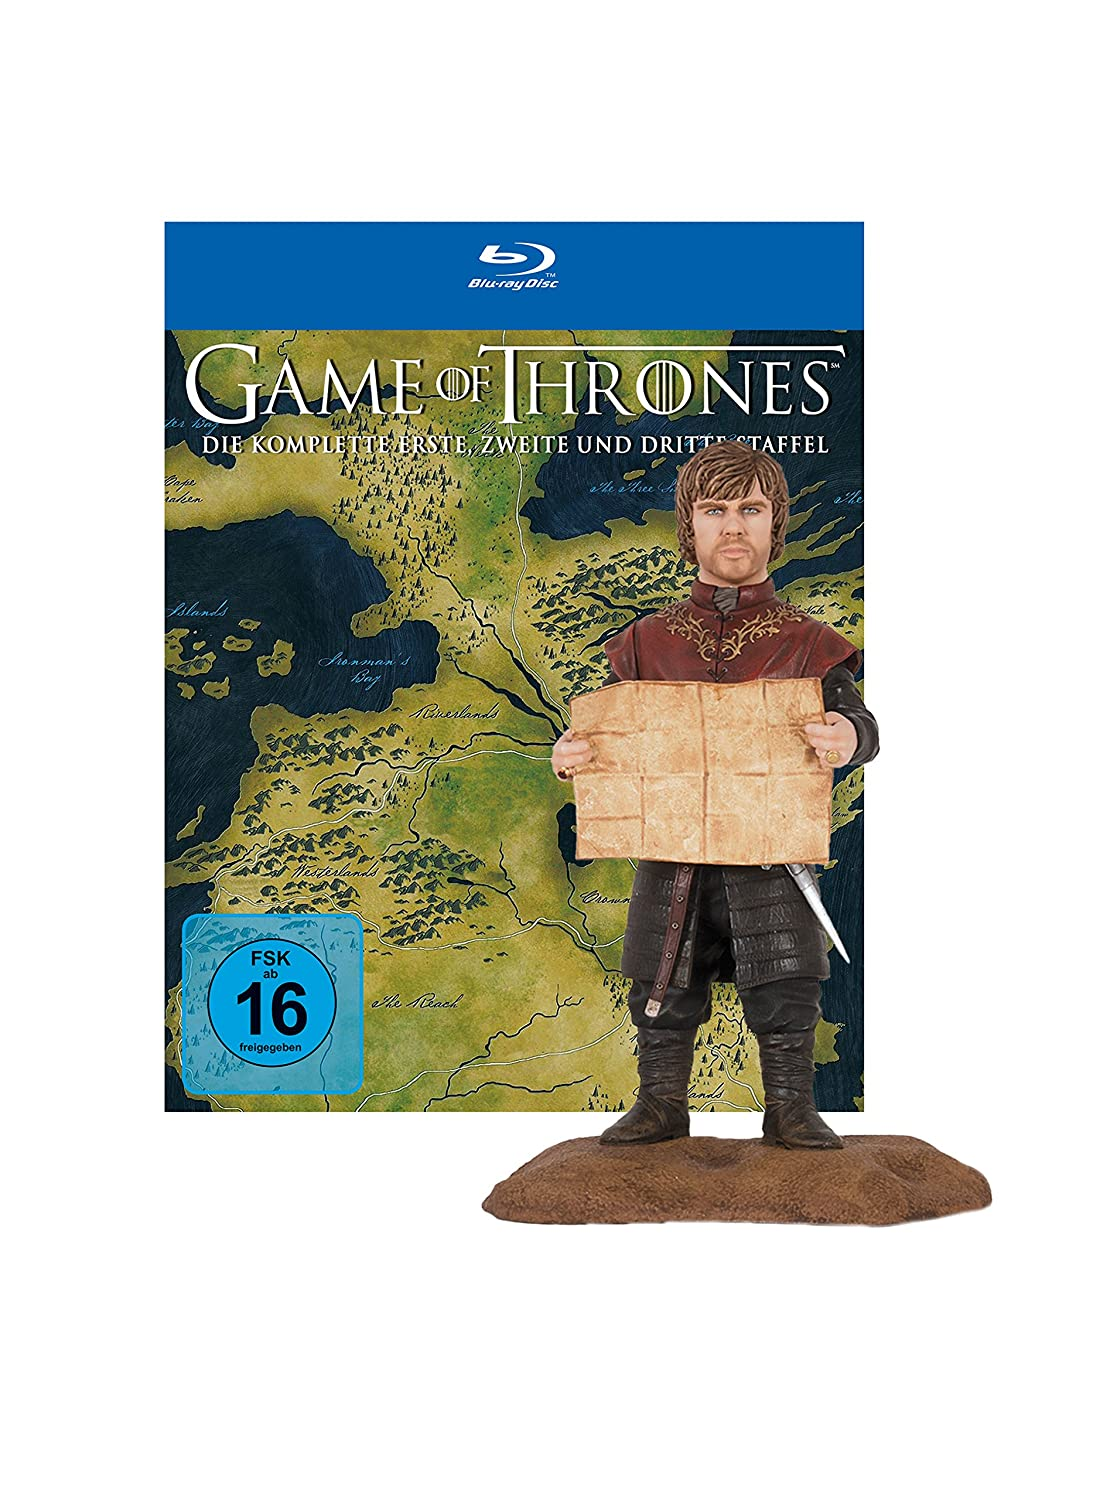 Game of San Diego Mall Thrones All items free shipping Season 1-3 Tyrion exclusive with collectibles t